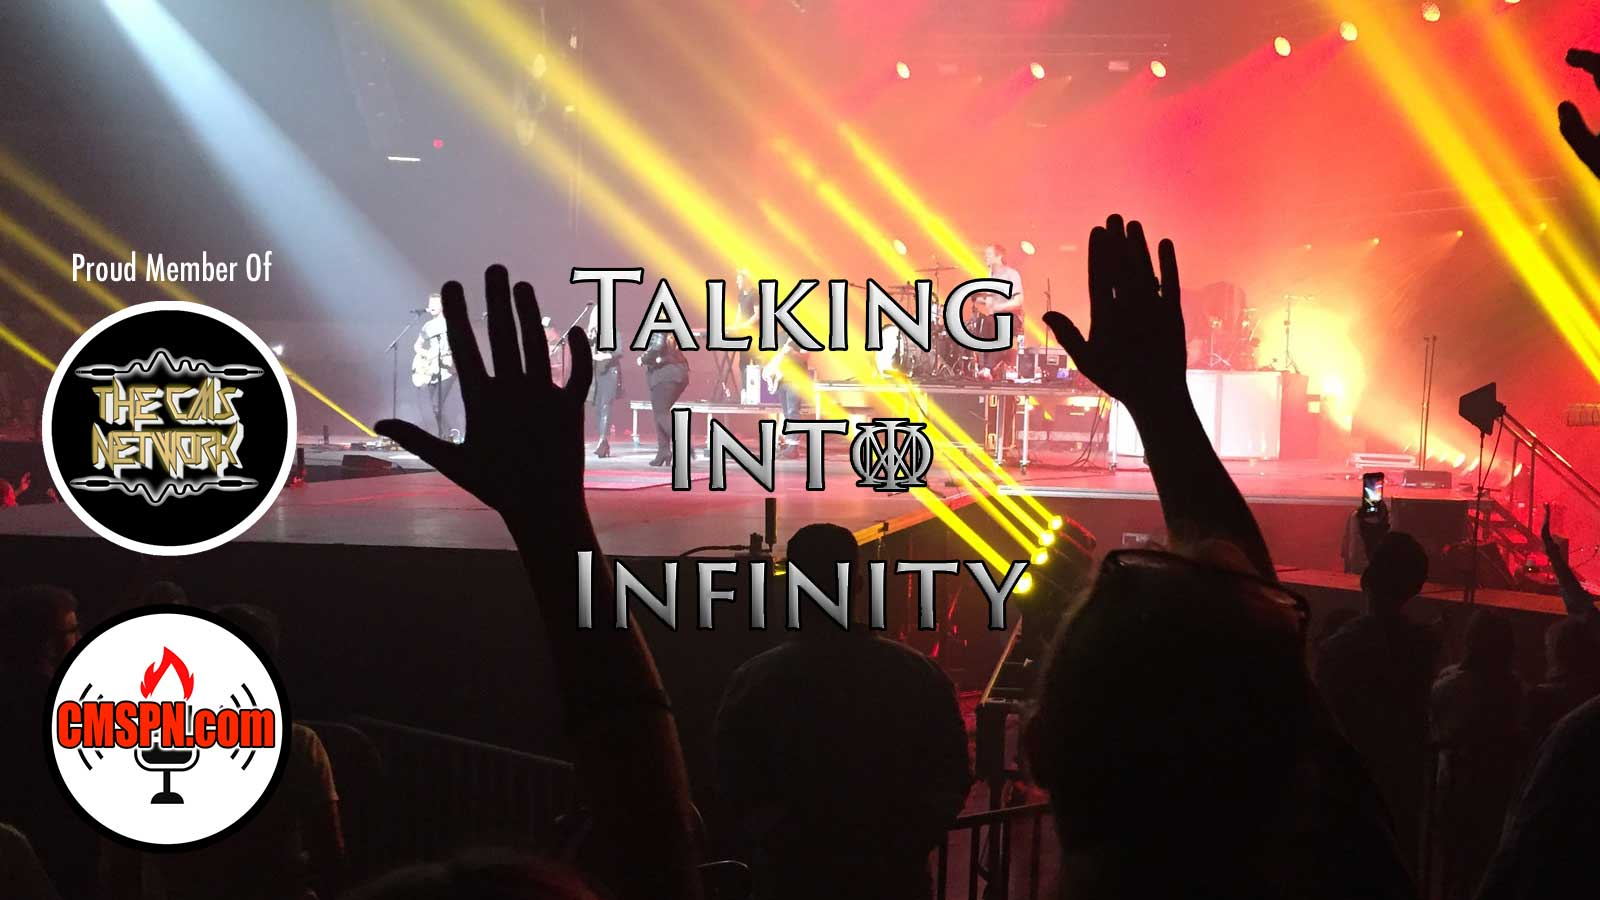 Image: Talking Into Infinity